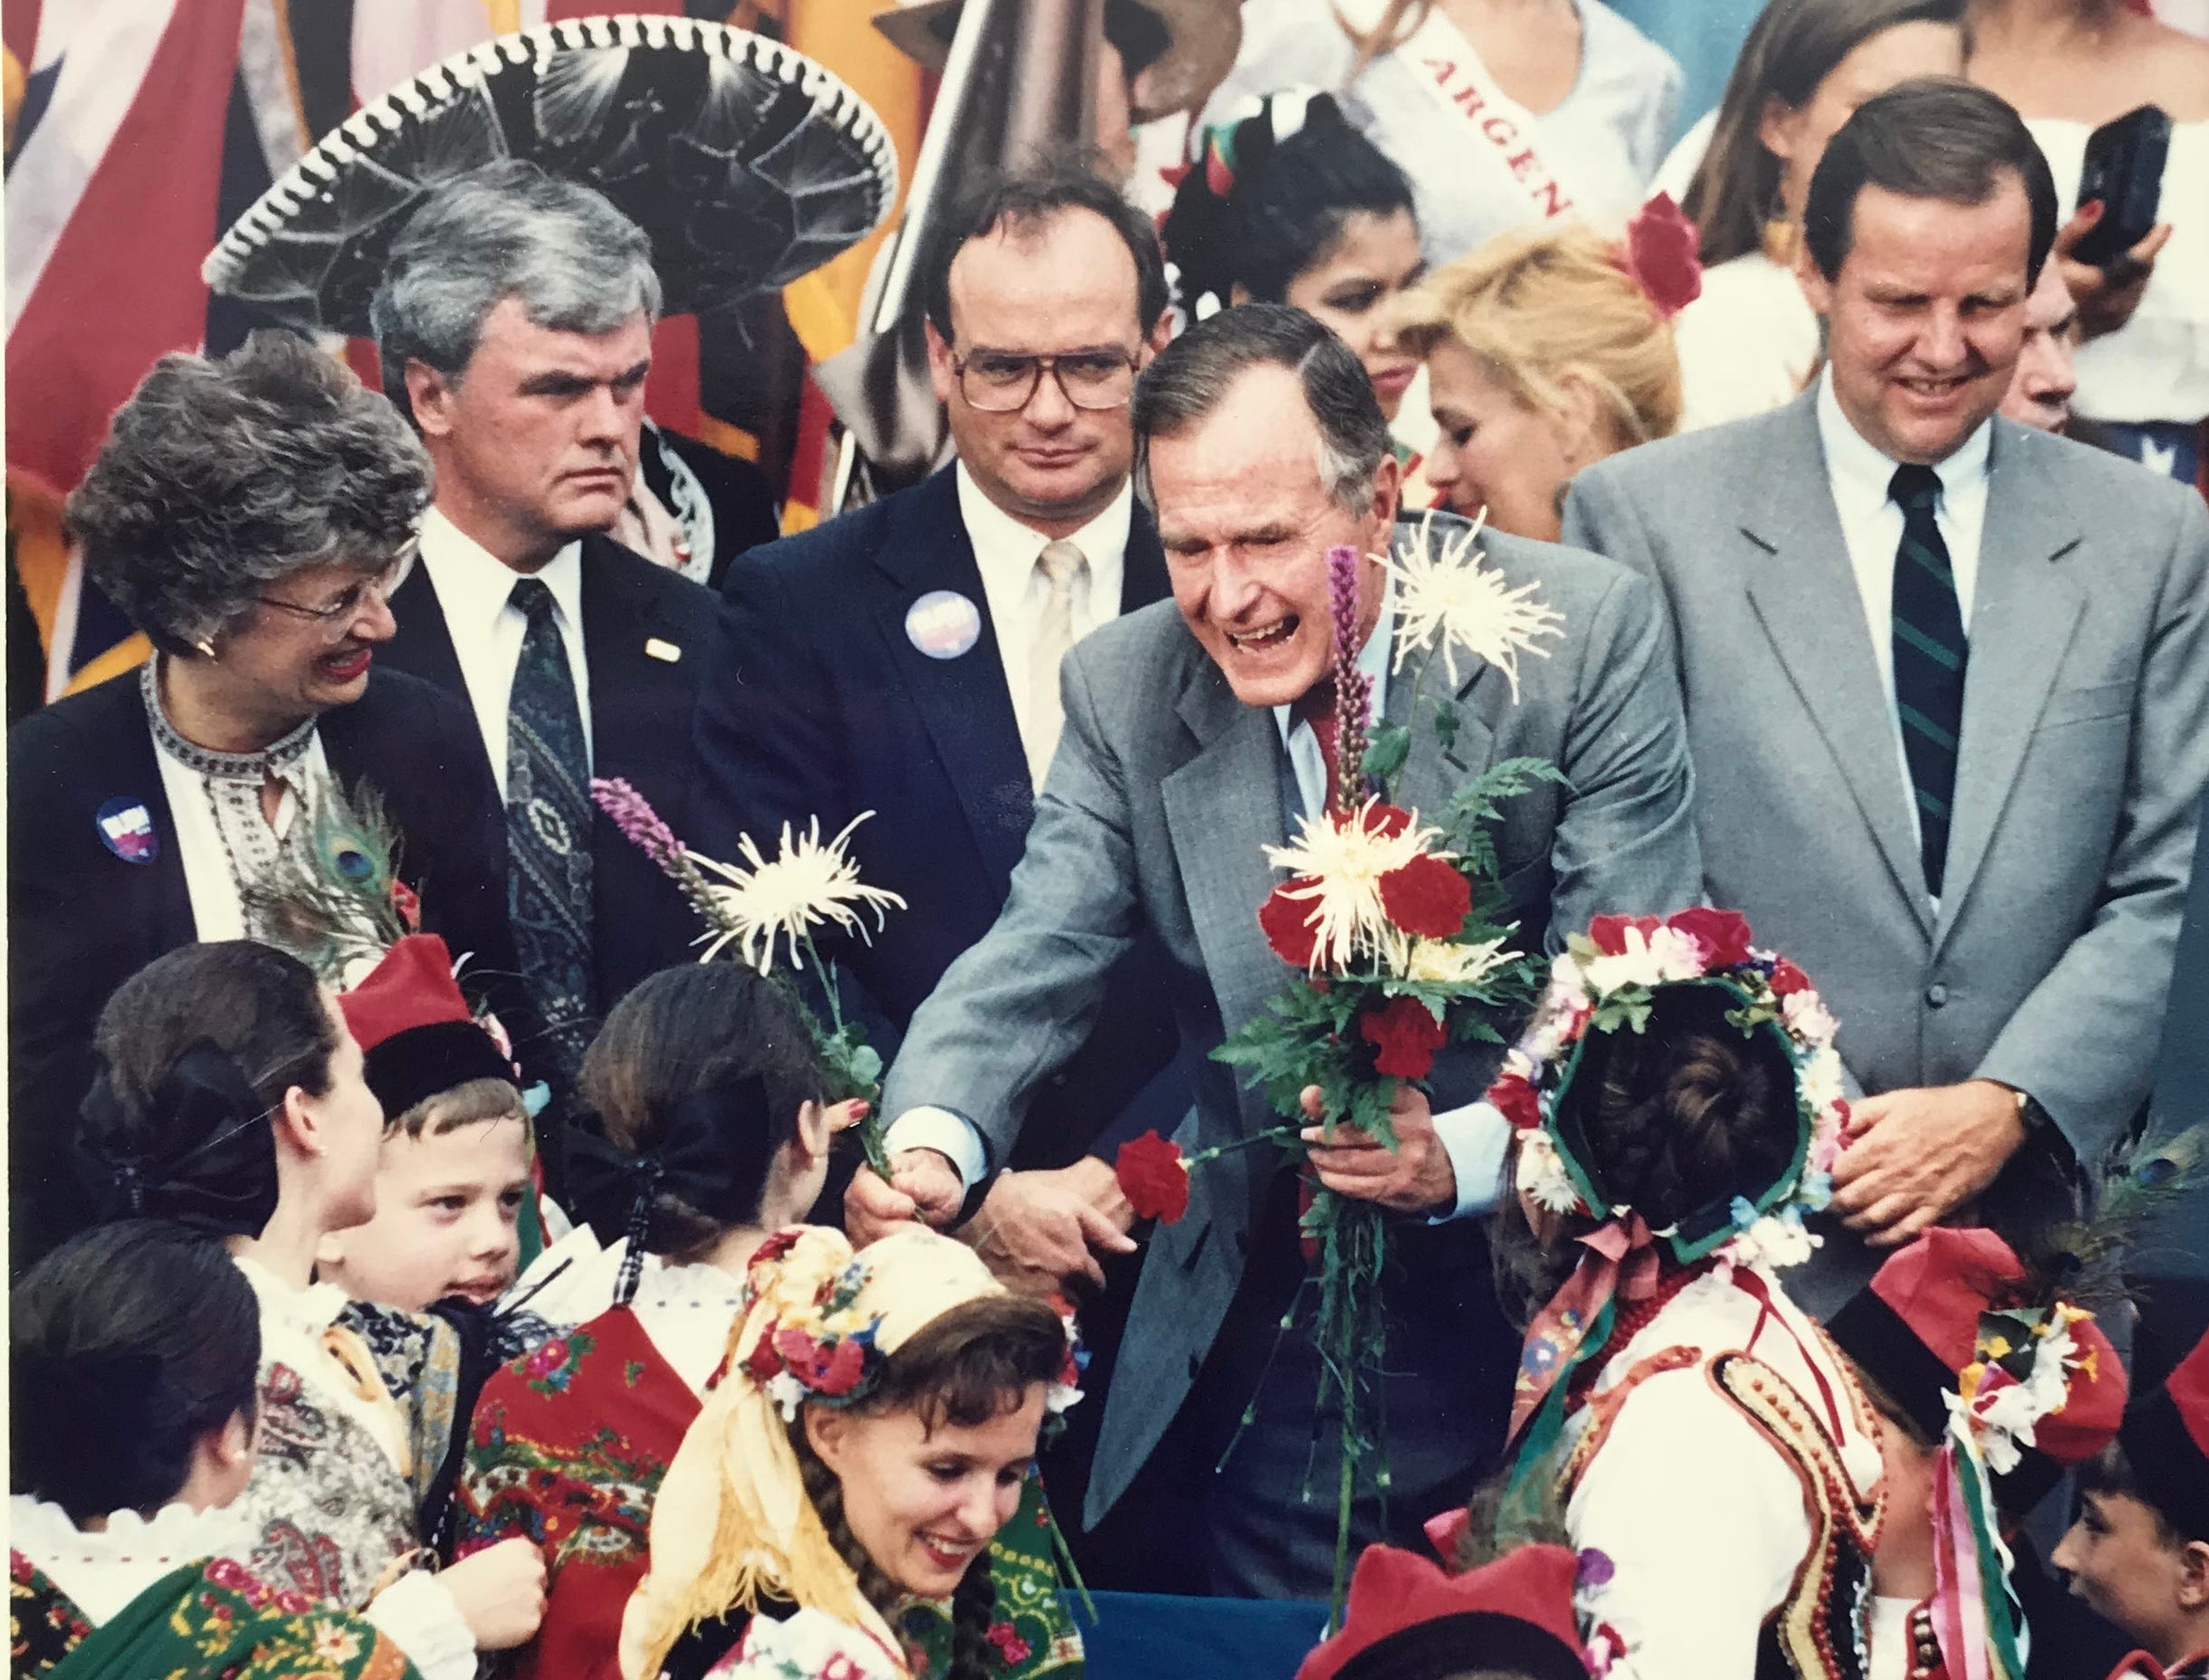 President George H.W. Bush receives flowers from children from the Polish National Alliance outside Three Saints Russian Orthodox Church in Garfield on July 21, 1992. Behind him are former state Sen. Leanna Brown, Senate President Donald DiFrancesco, and Gov. Thomas H. Kean.